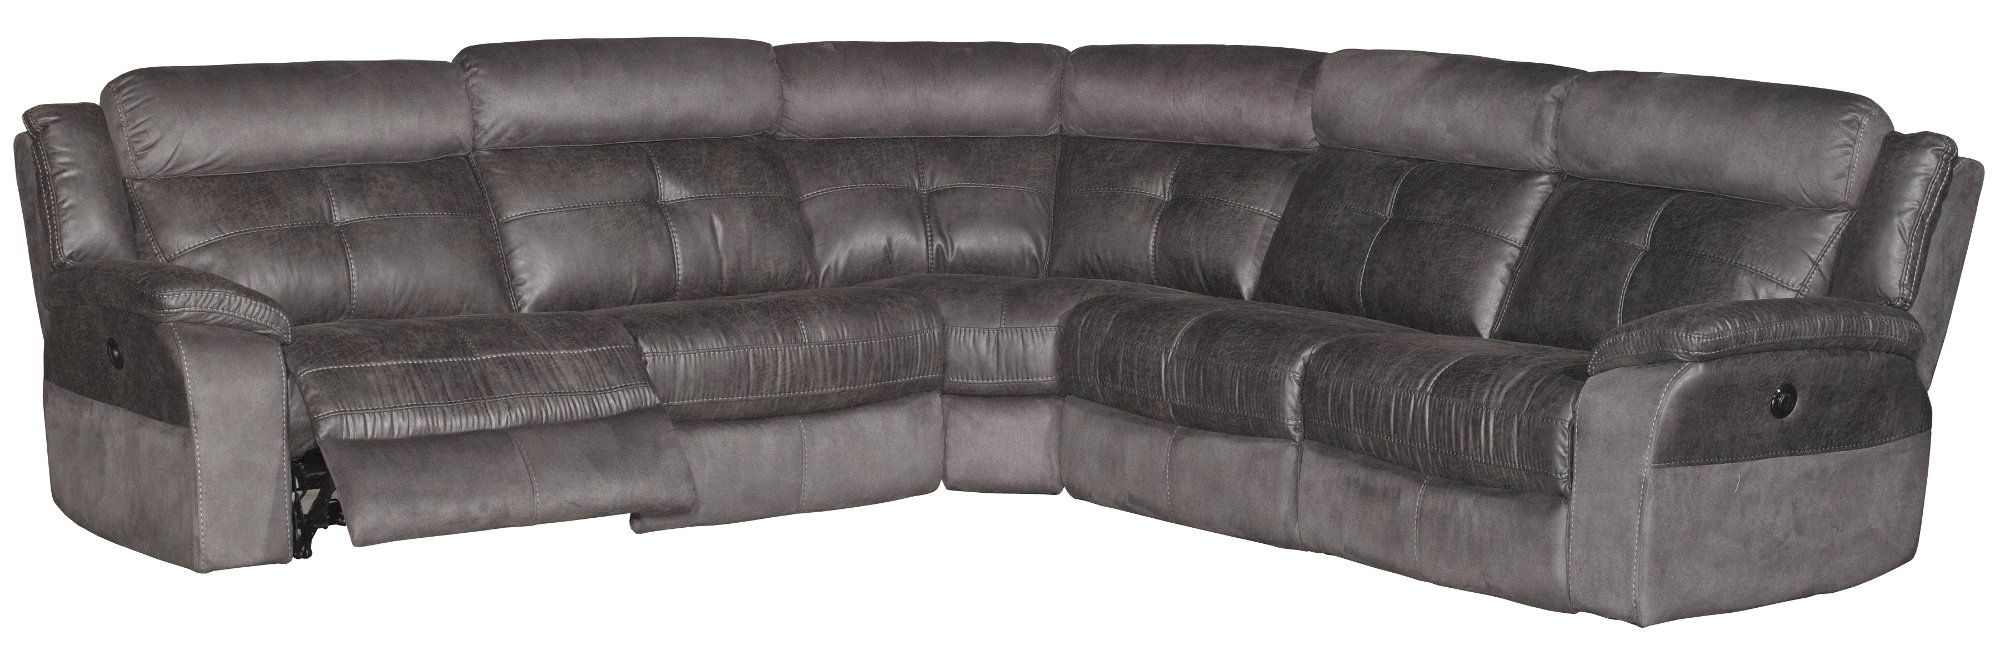 Gray Microfiber 5-Piece 3x Power Reclining Sectional - Denver  sc 1 st  RC Willey : rc willey sectional - Sectionals, Sofas & Couches